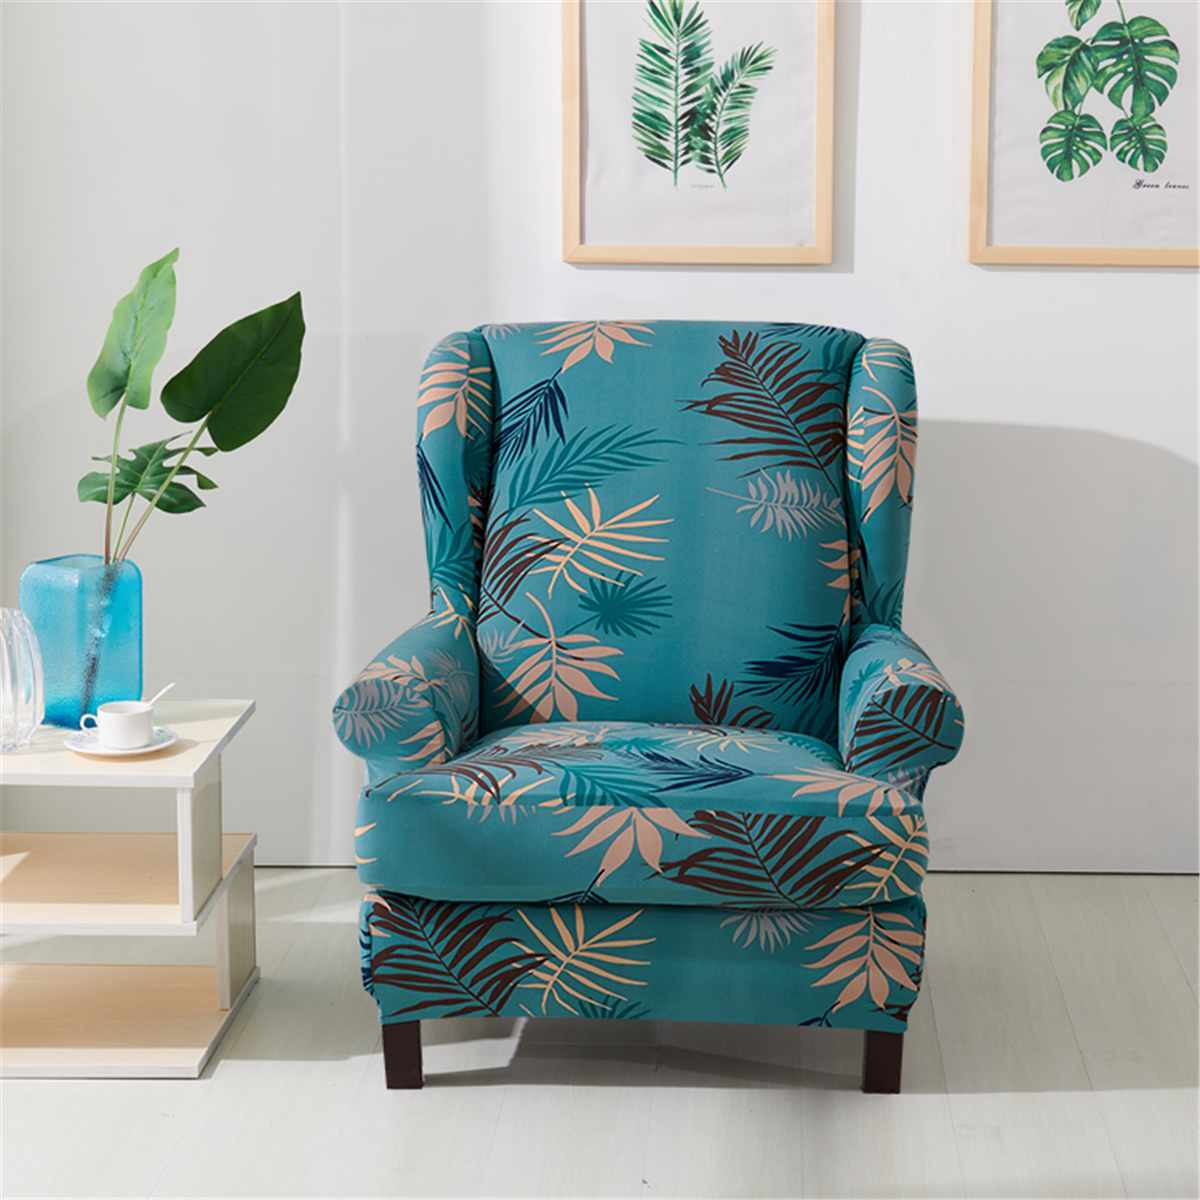 Stretch King Back Chair Cover Flower Printed Elastic Armchair Wingback Chair Cover Protector Slipcover Protector For Room Sofa Chair Covers For Dining